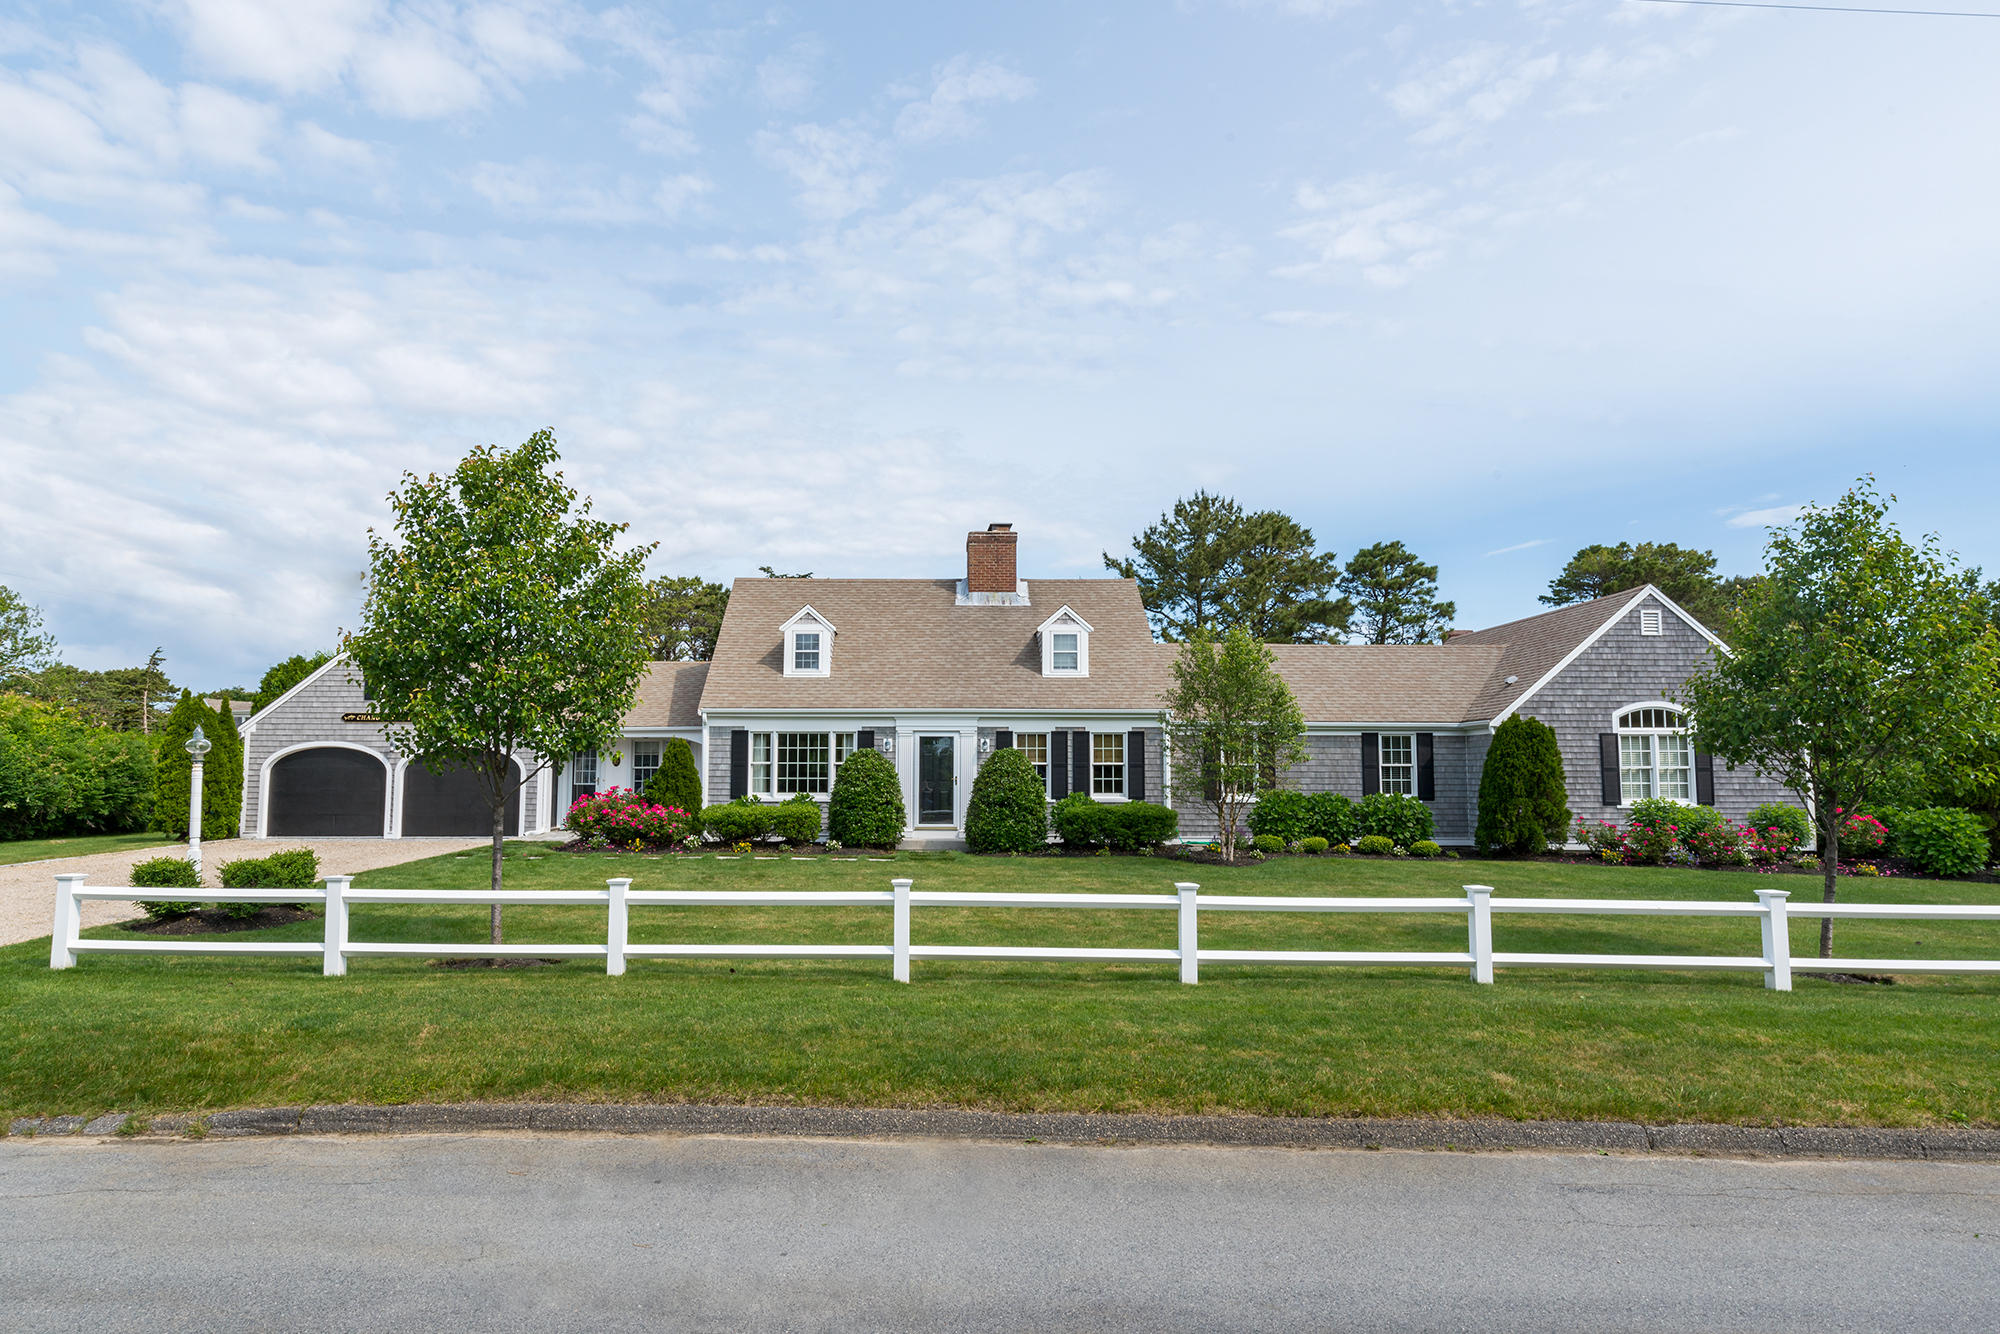 Chatham Real Estate - Chatham, MA Real Estate - Cape Cod Homes for Sale